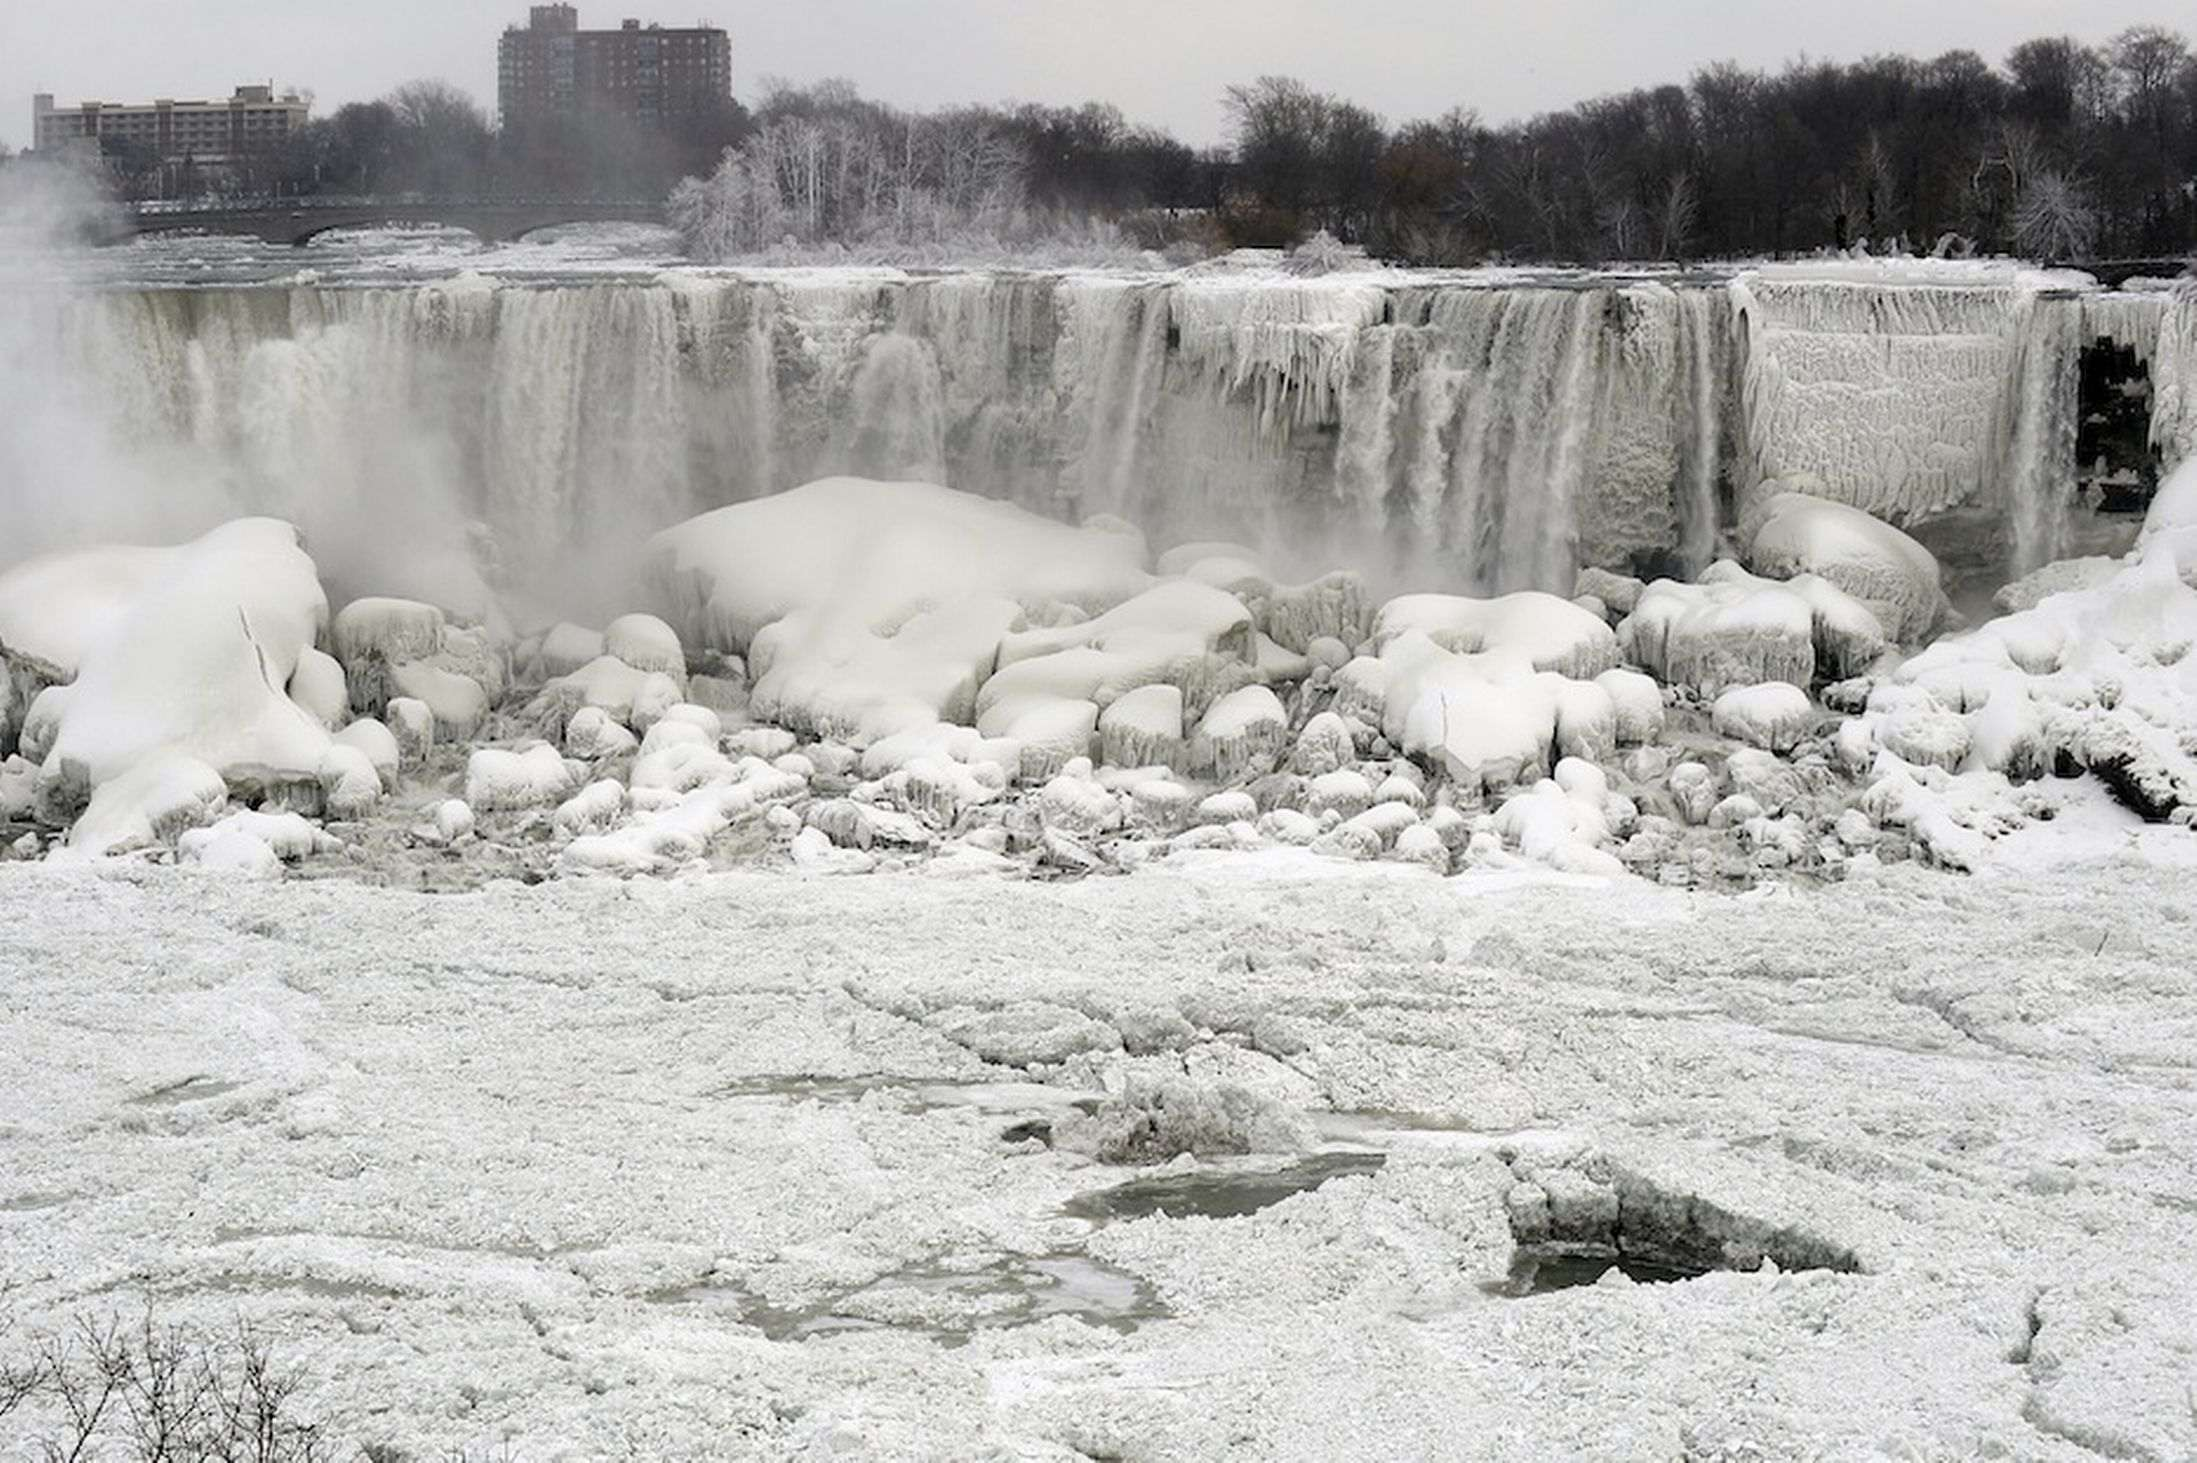 Niagara-Falls-freezes-as-polar-vortex-grips-North-America-3003774_R